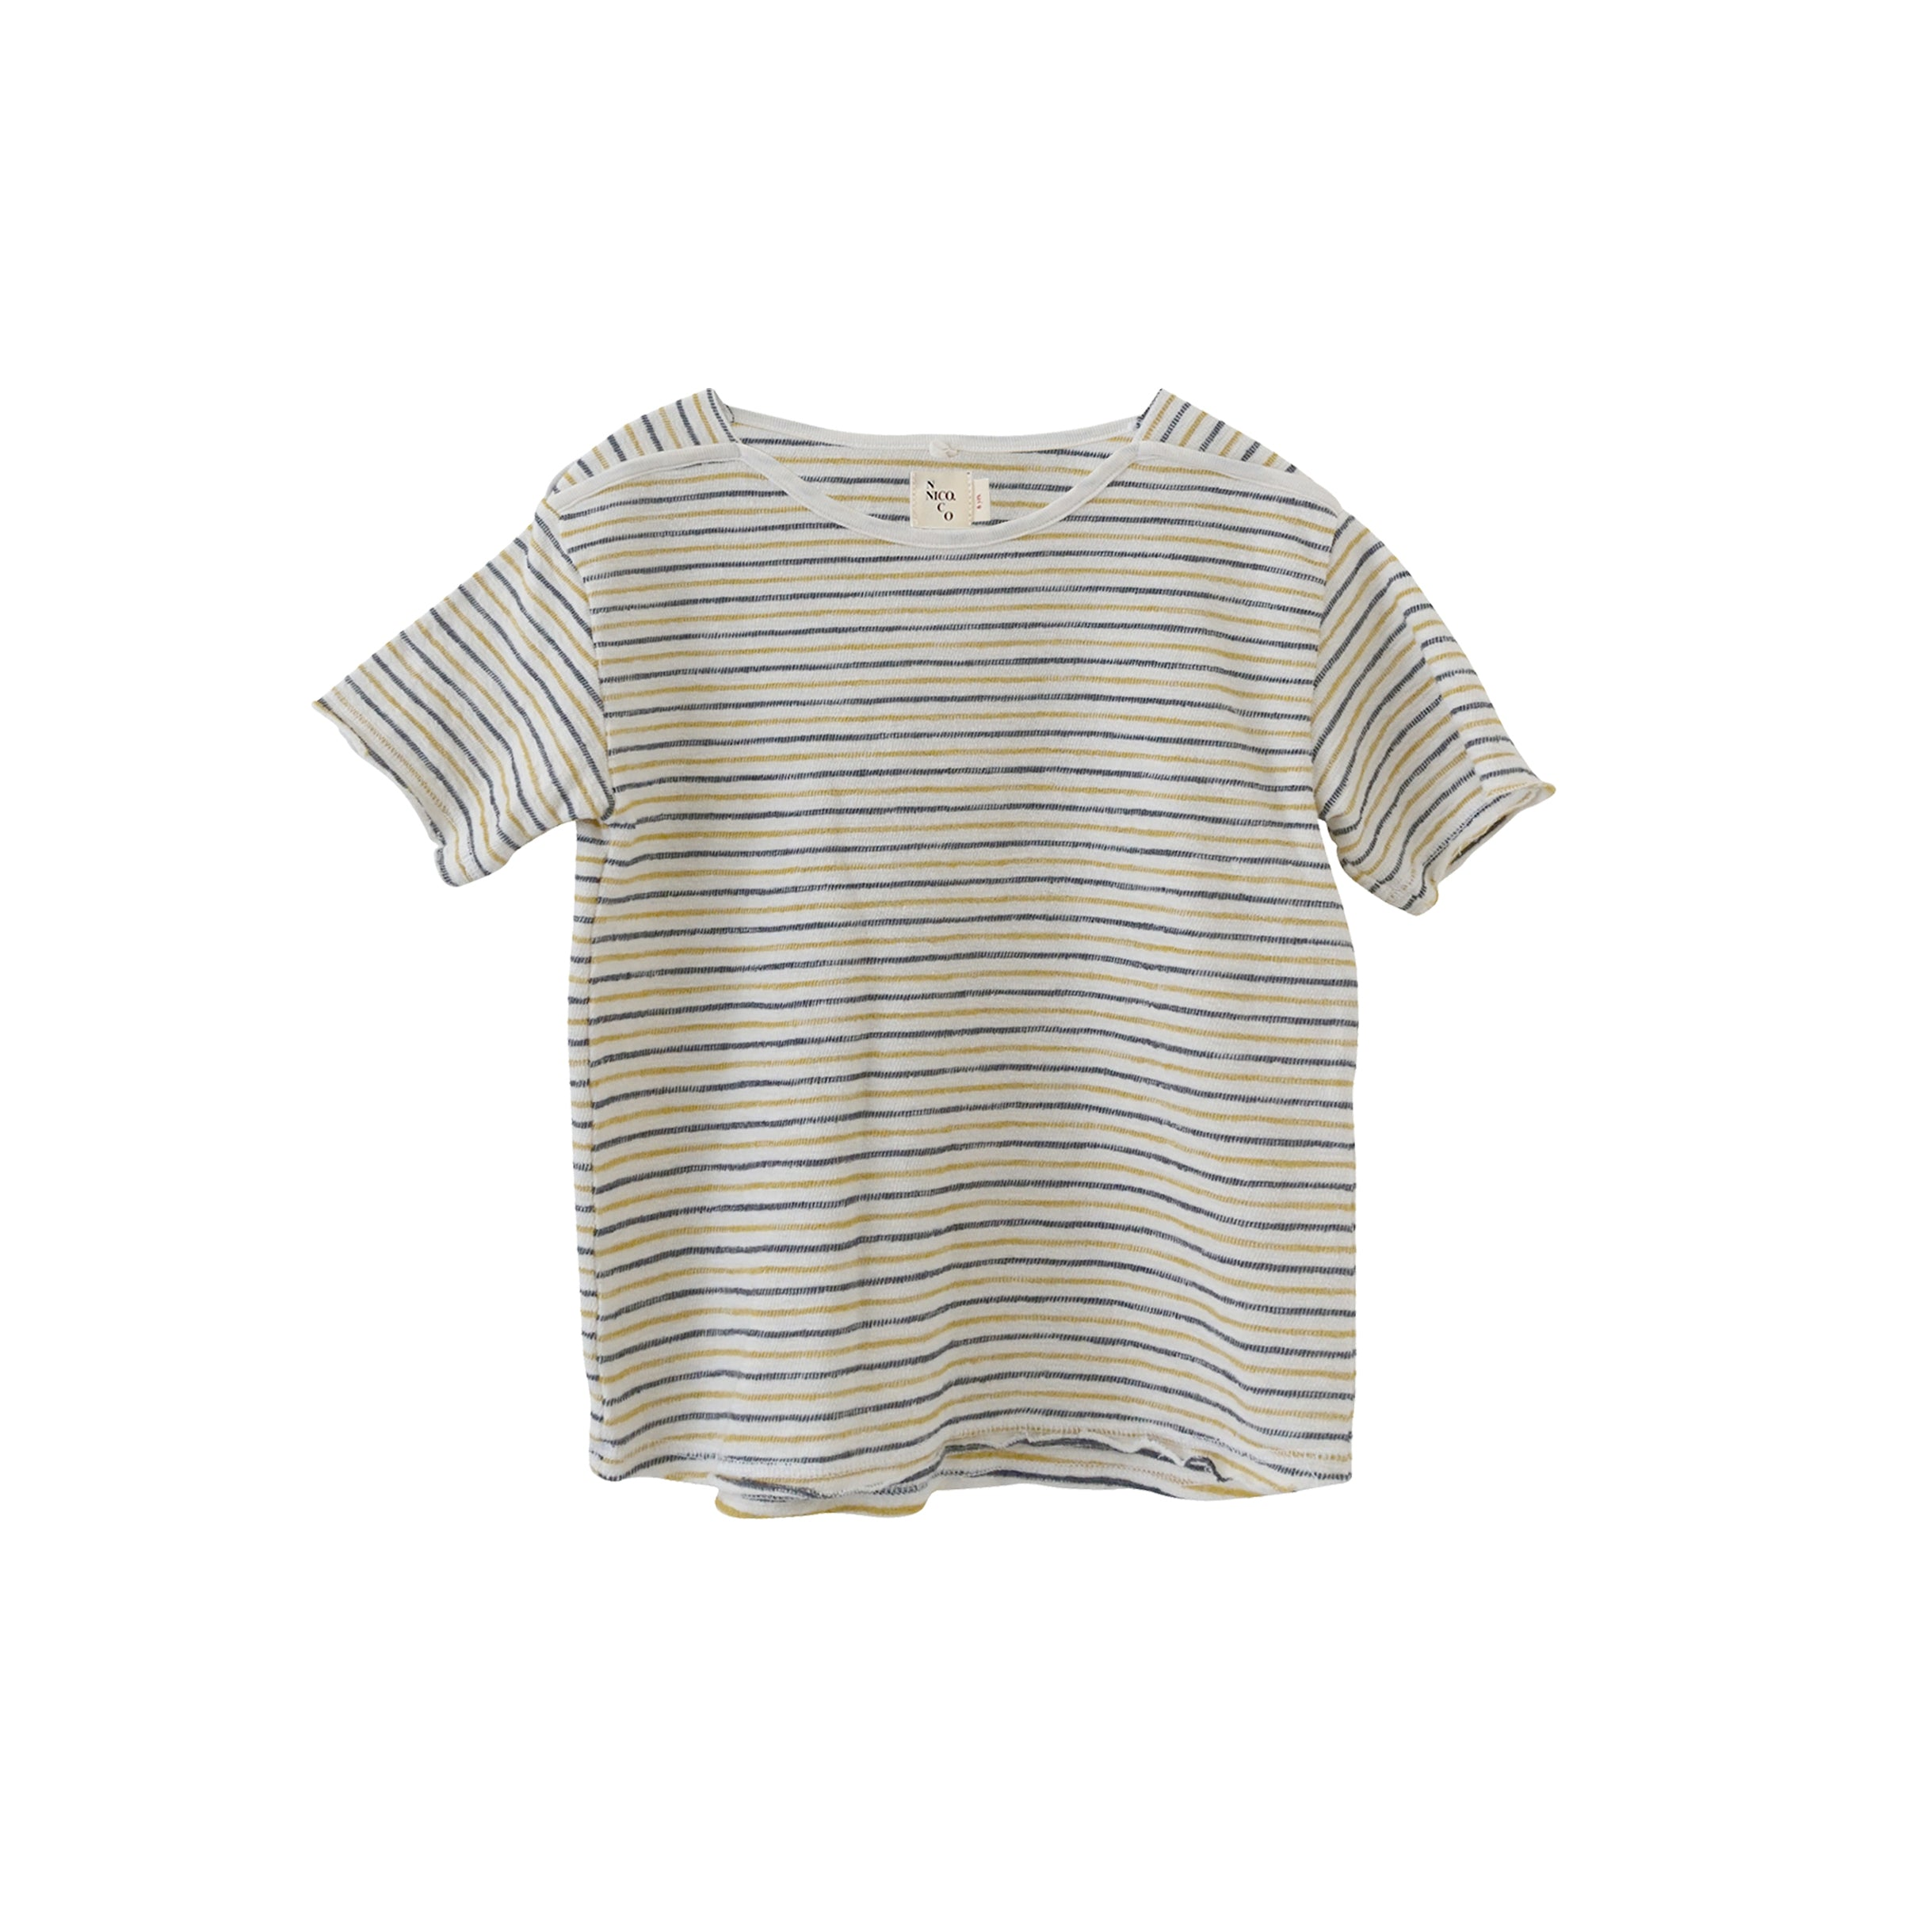 Nico Nico Frances Kid's Tee Soy Natural Stripe Organic Cotton | BIEN BIEN www.bienbienshop.com